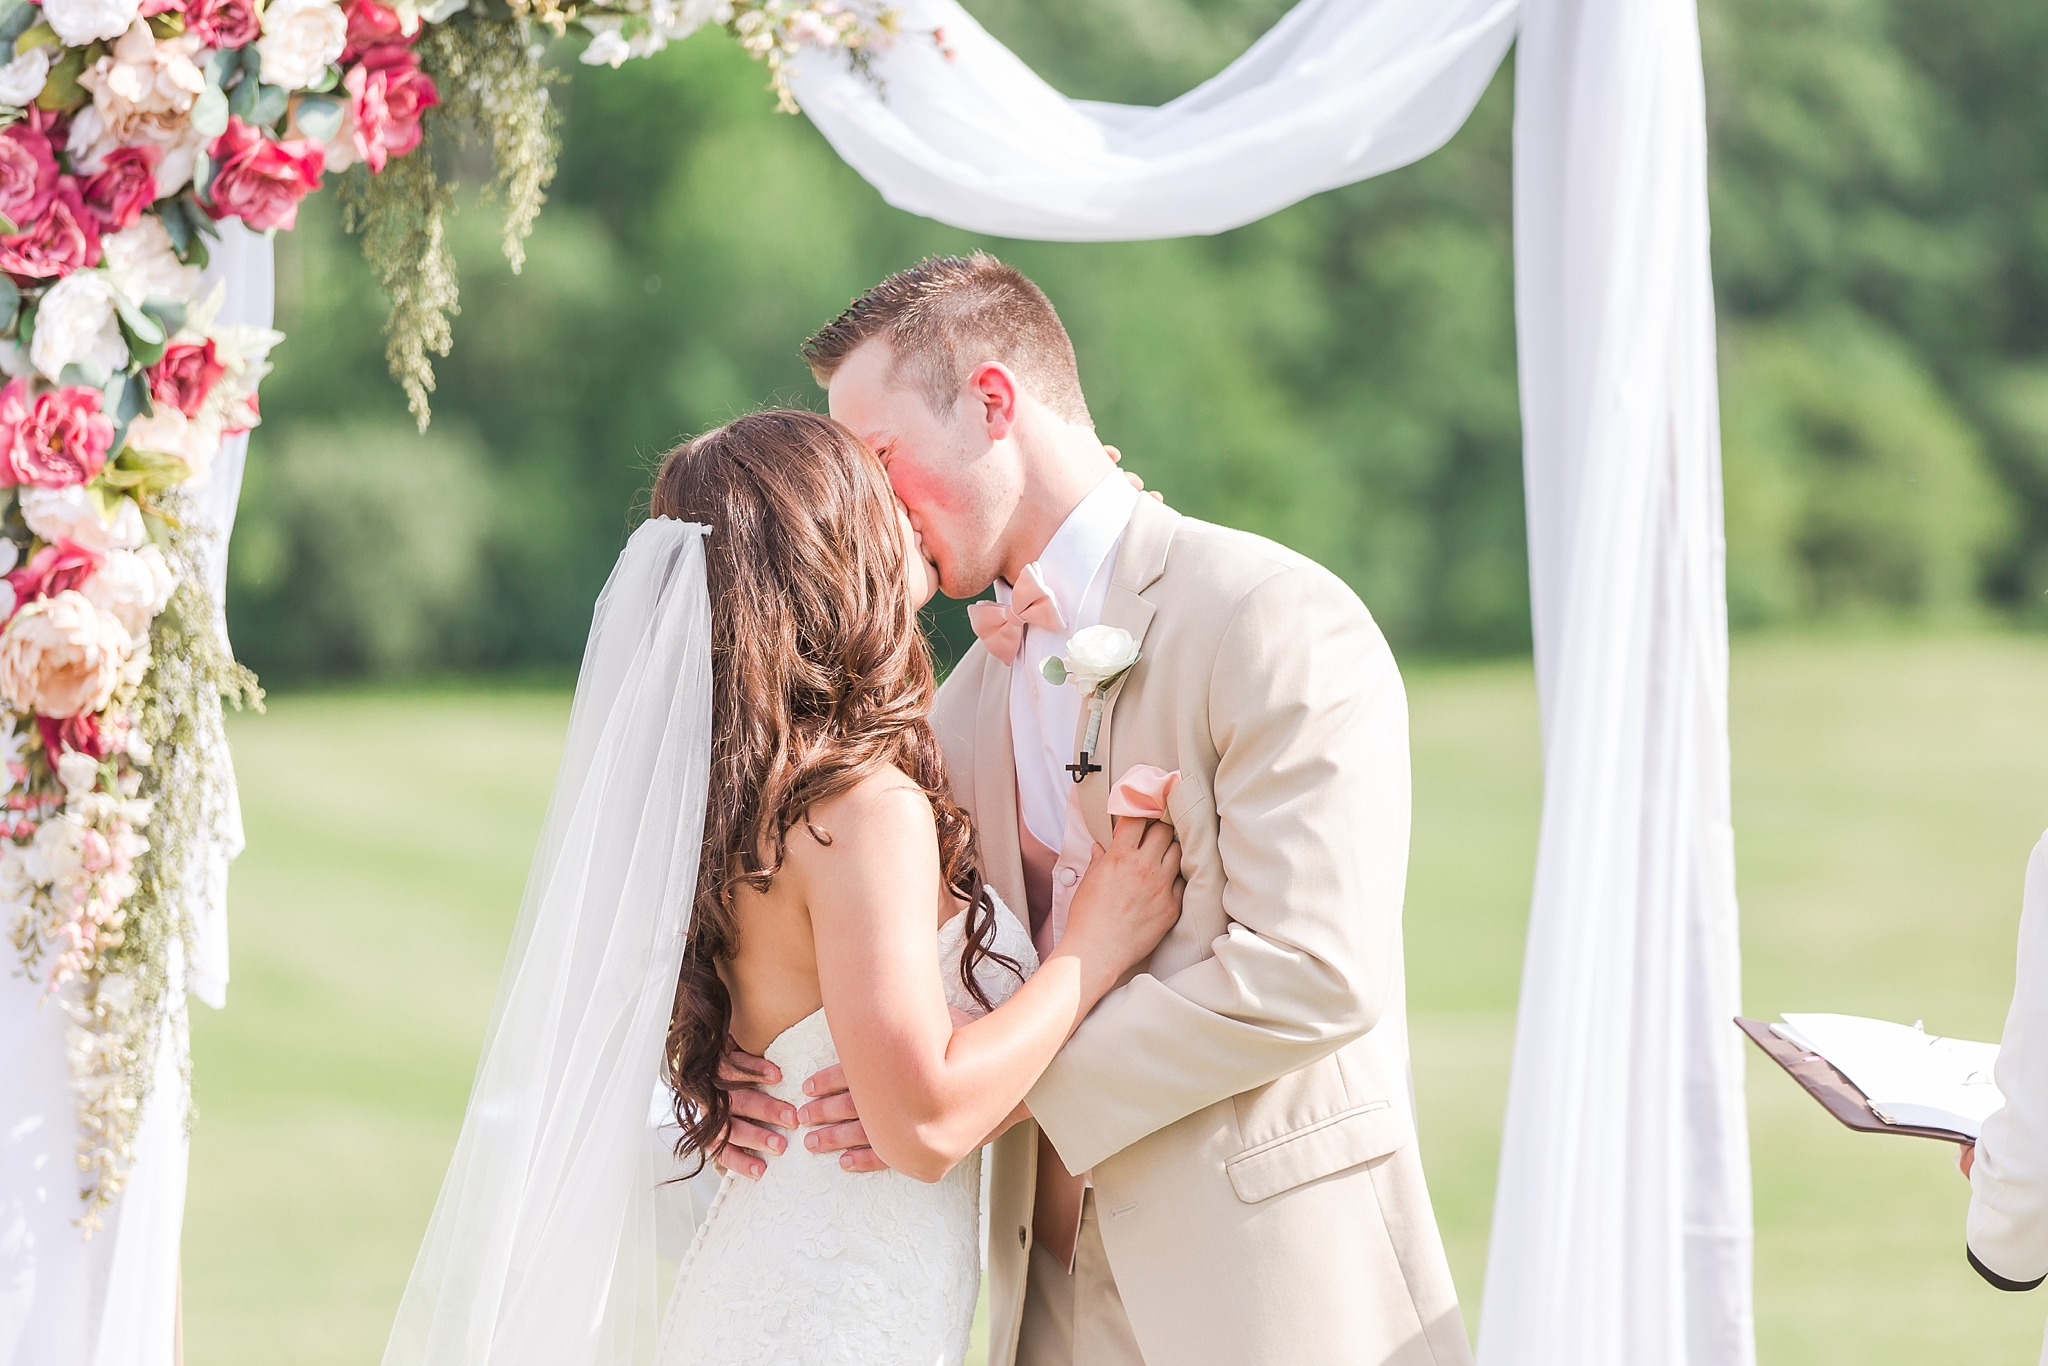 candid-timeless-wedding-photos-at-the-captains-club-in-grand-blanc-michigan-by-courtney-carolyn-photography_0051.jpg